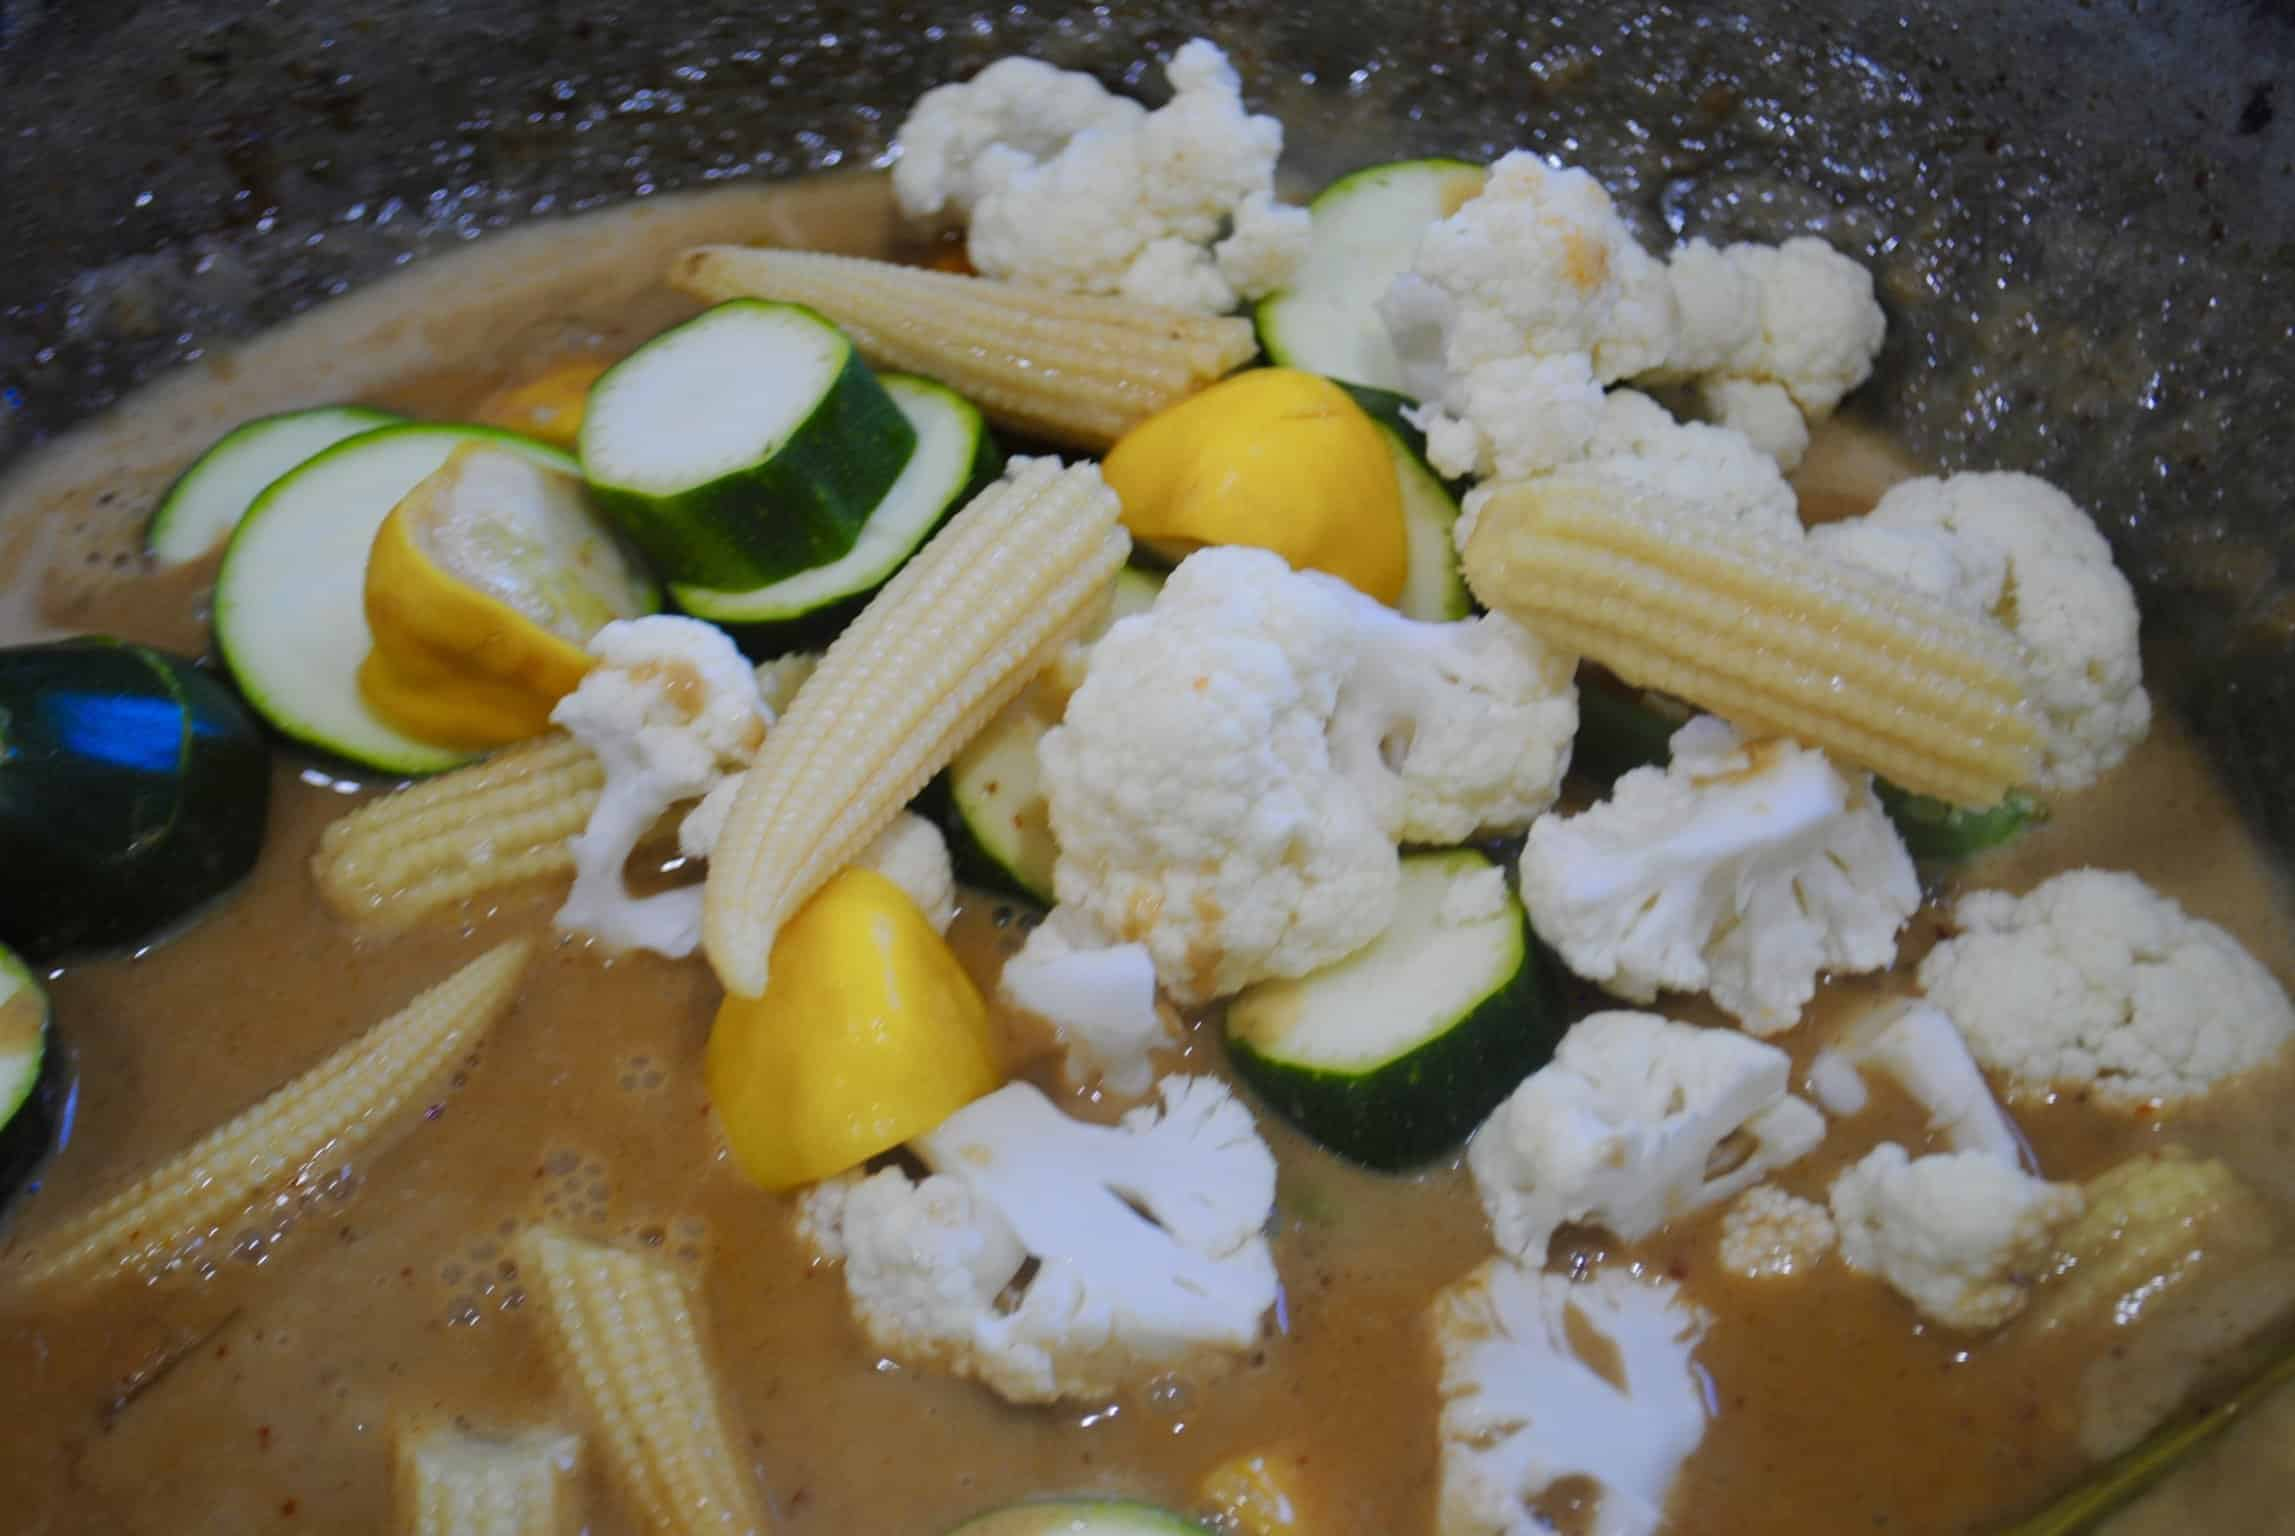 Thai vegetable red curry after the corn cauliflower zucchini and squash have been added